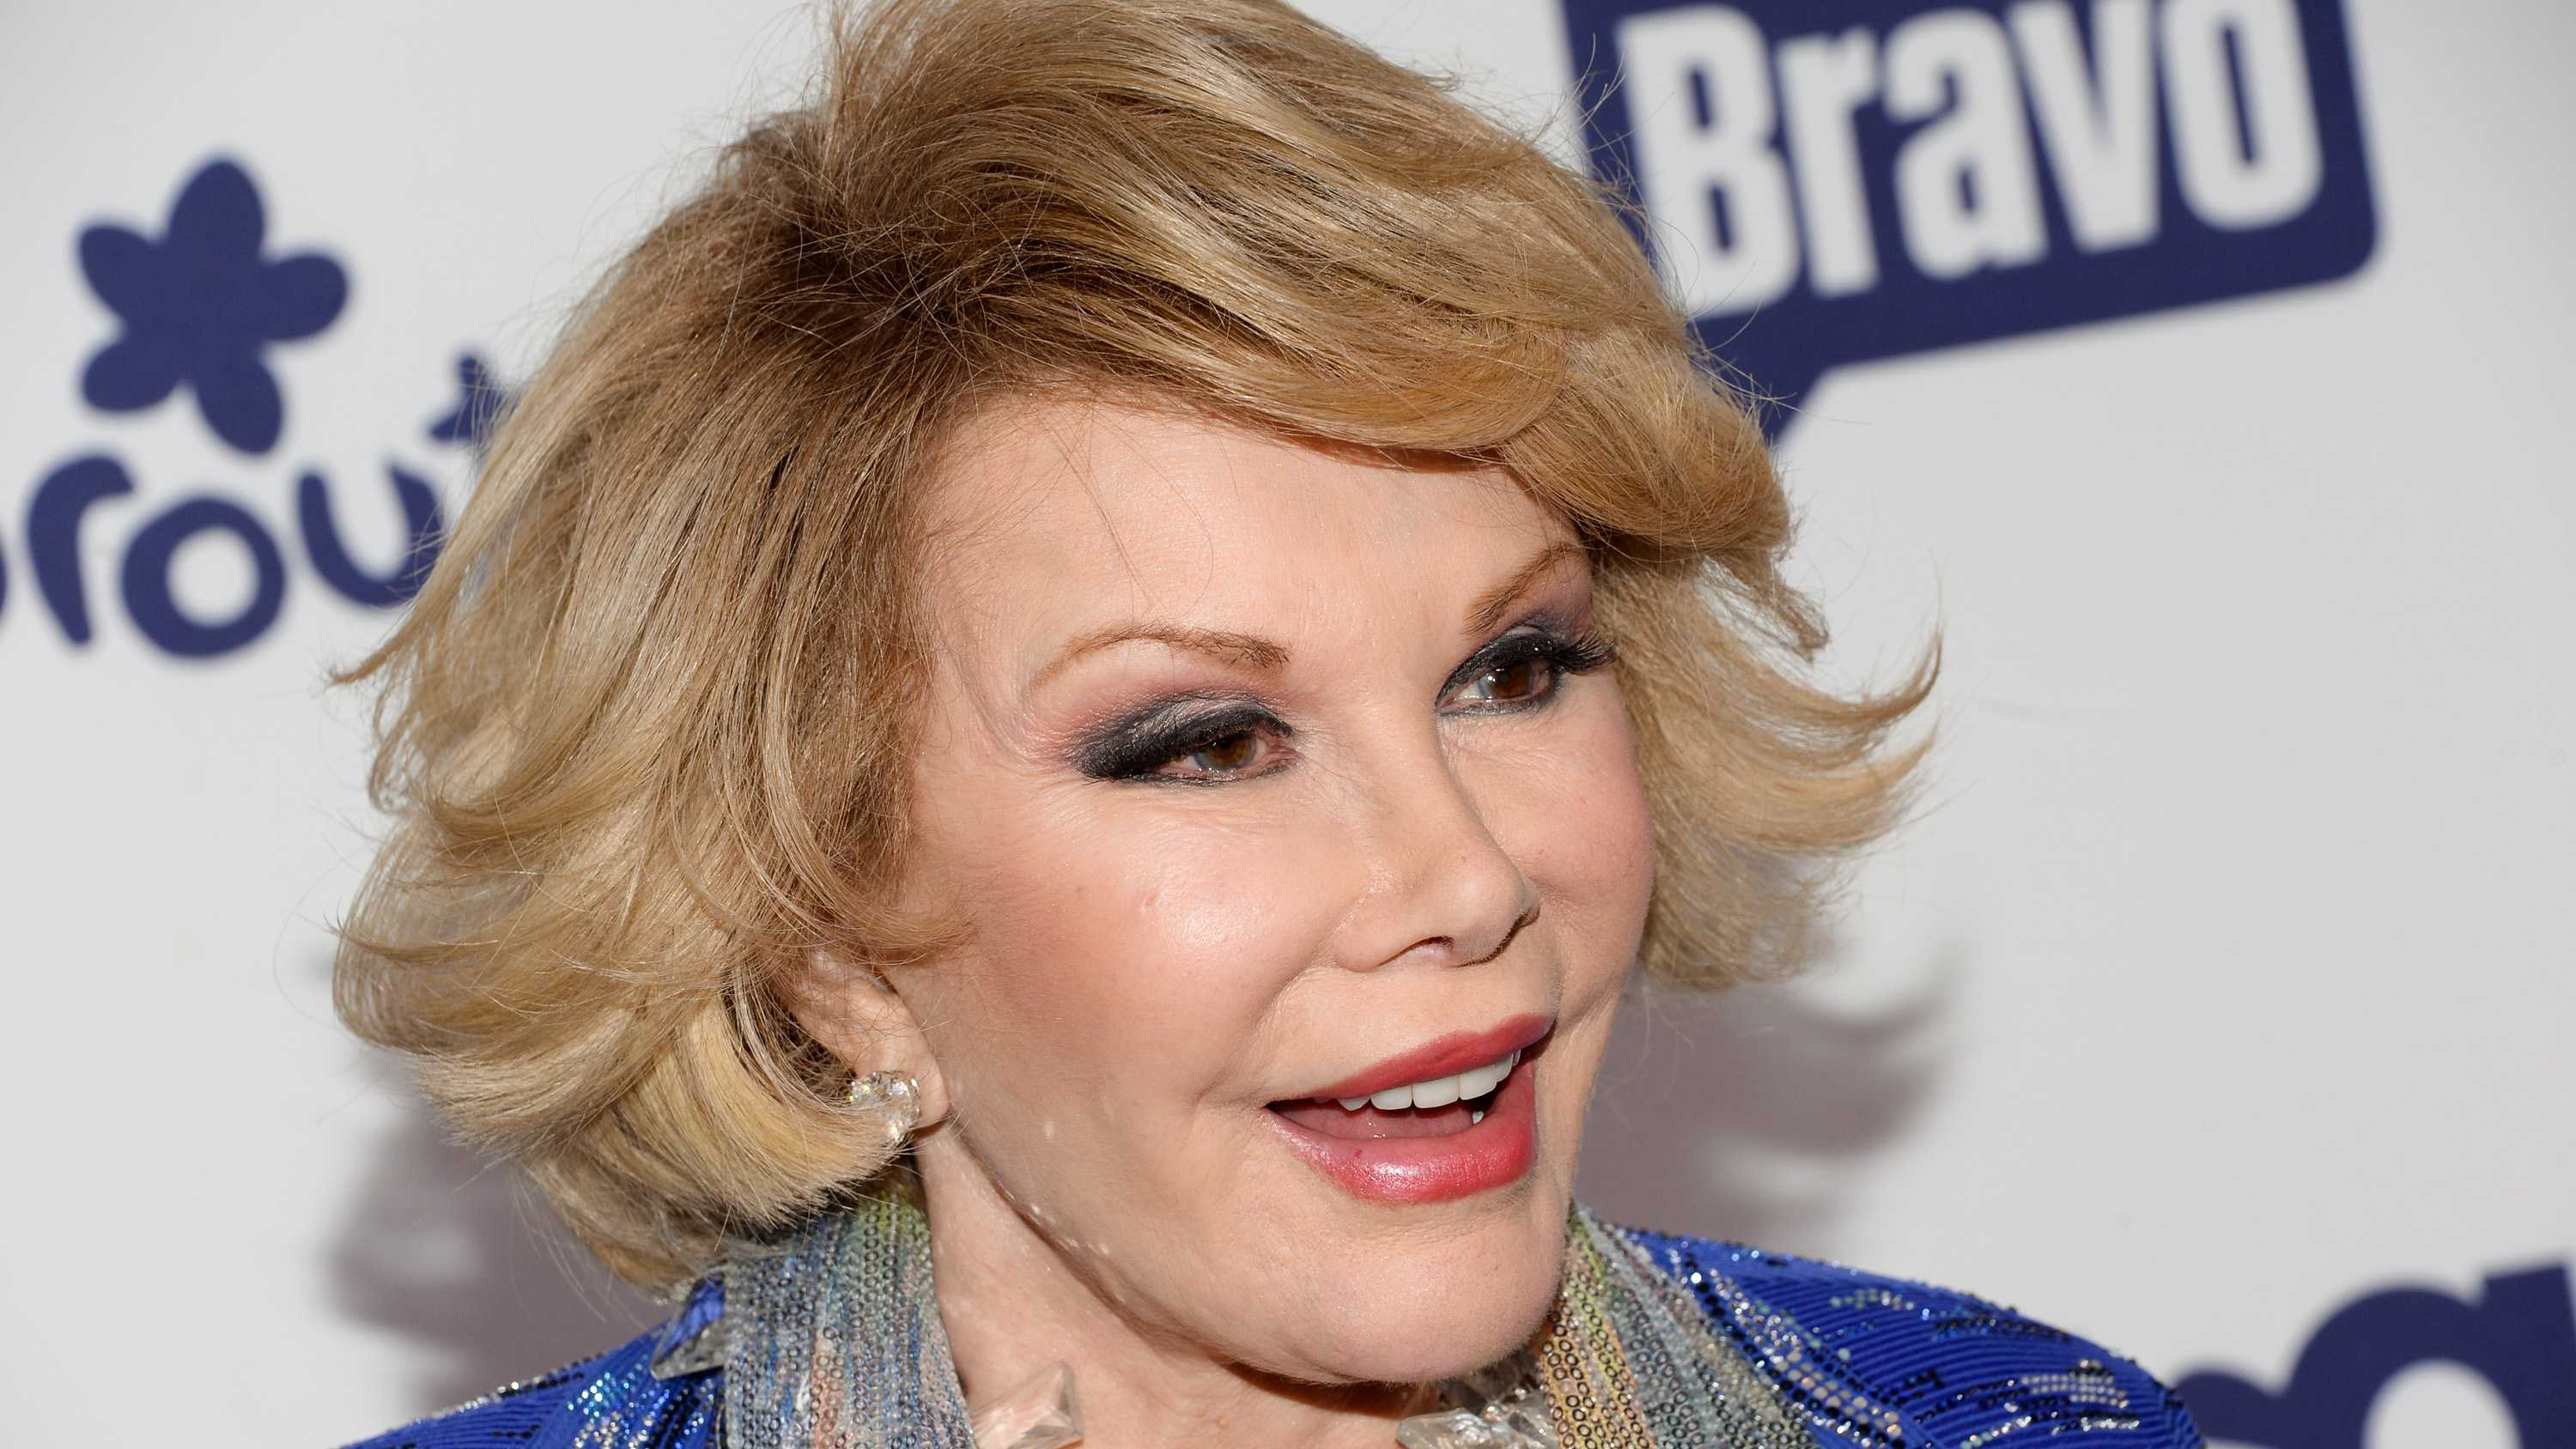 Joan Rivers 0828 AP.jpg